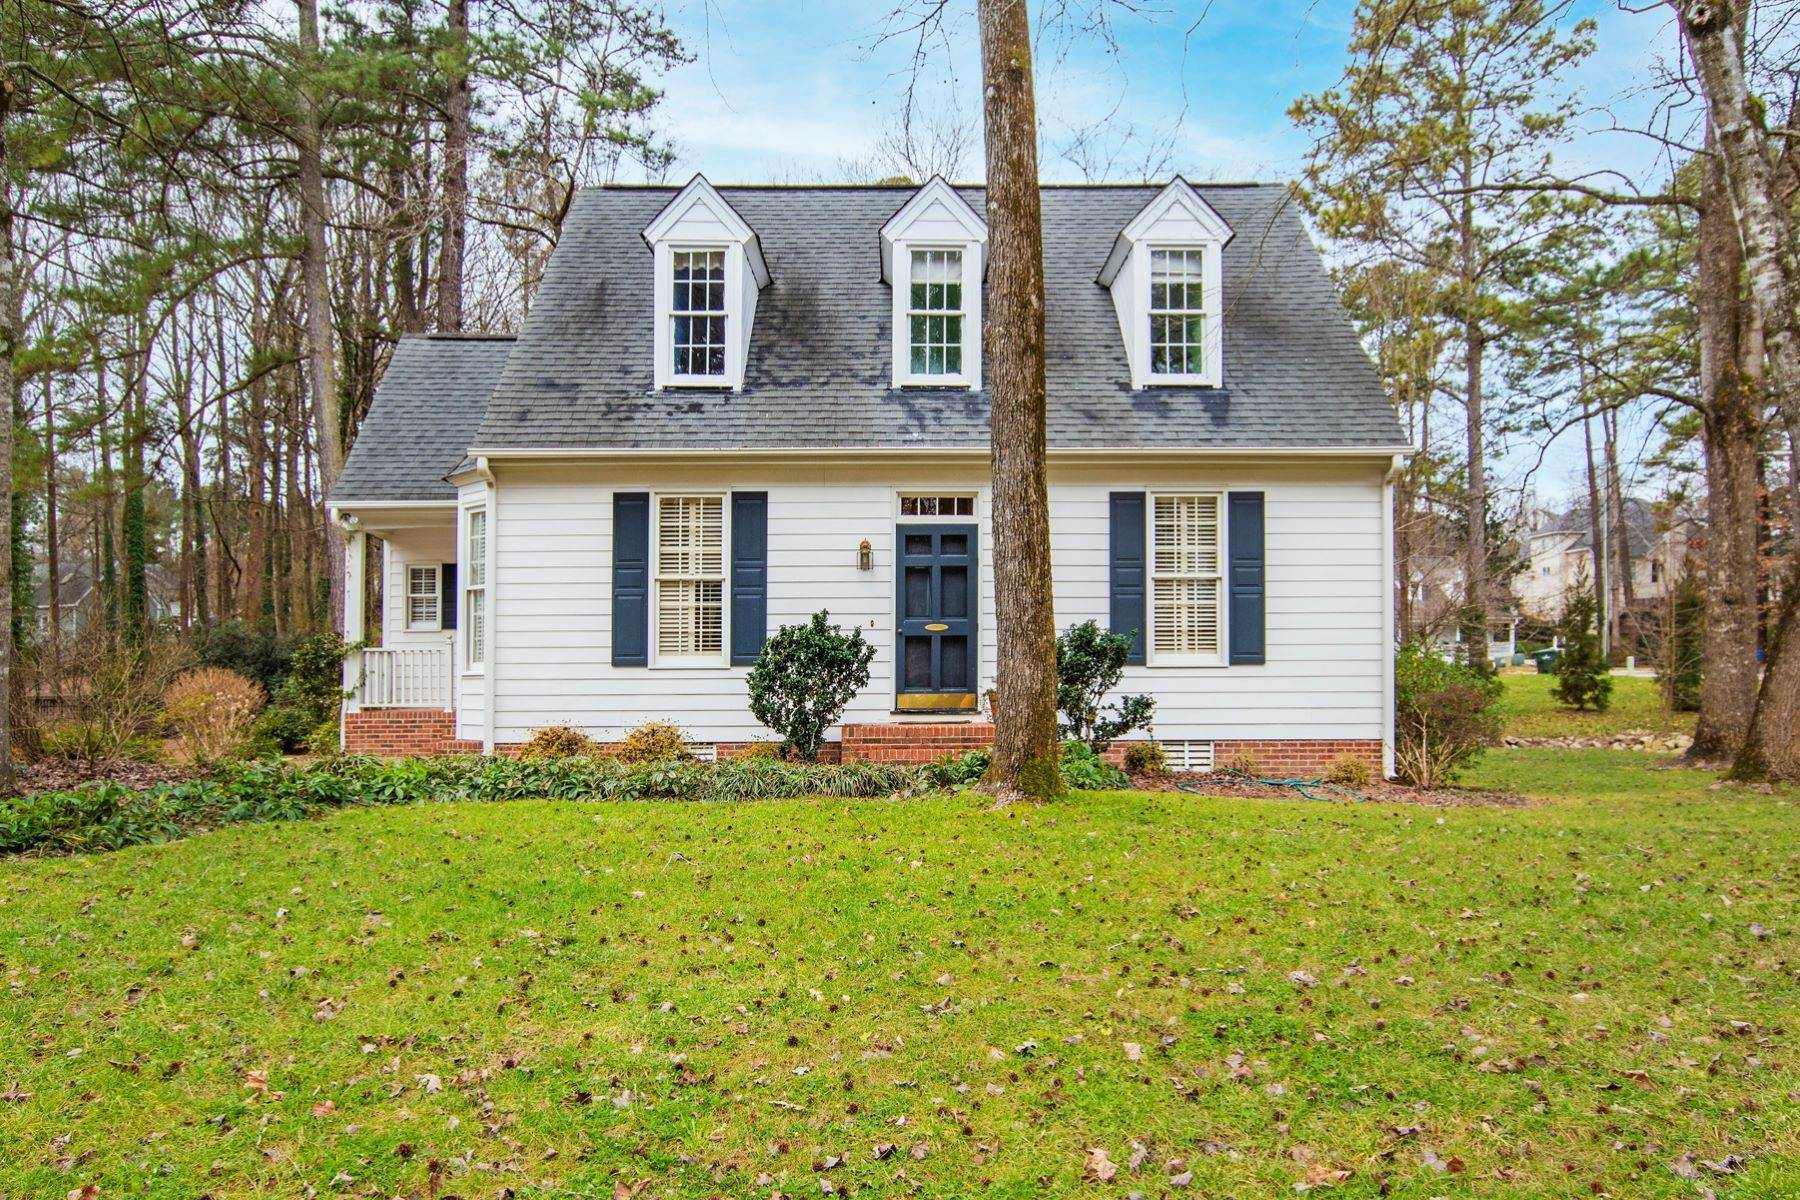 Single Family Homes for Sale at Valley Estates Cape Cod 6225 Dresden Lane Raleigh, North Carolina 27612 United States